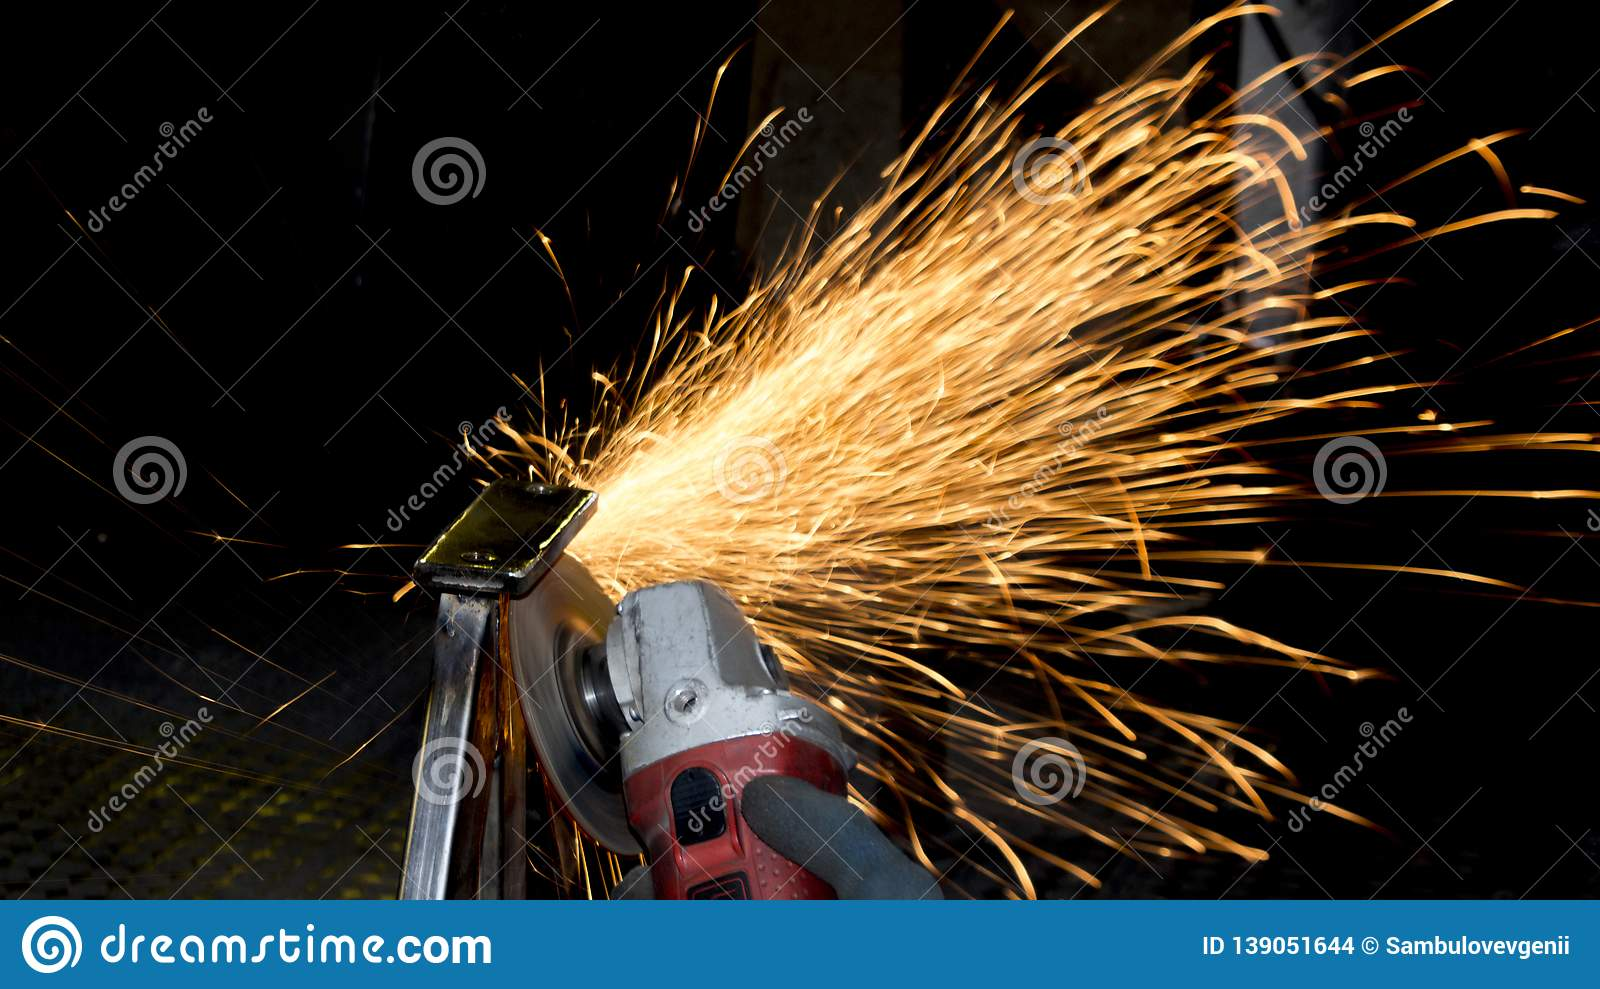 Spark on dark background. Processing of metal products and metal structures at the factory, factory, enterprise and organization.